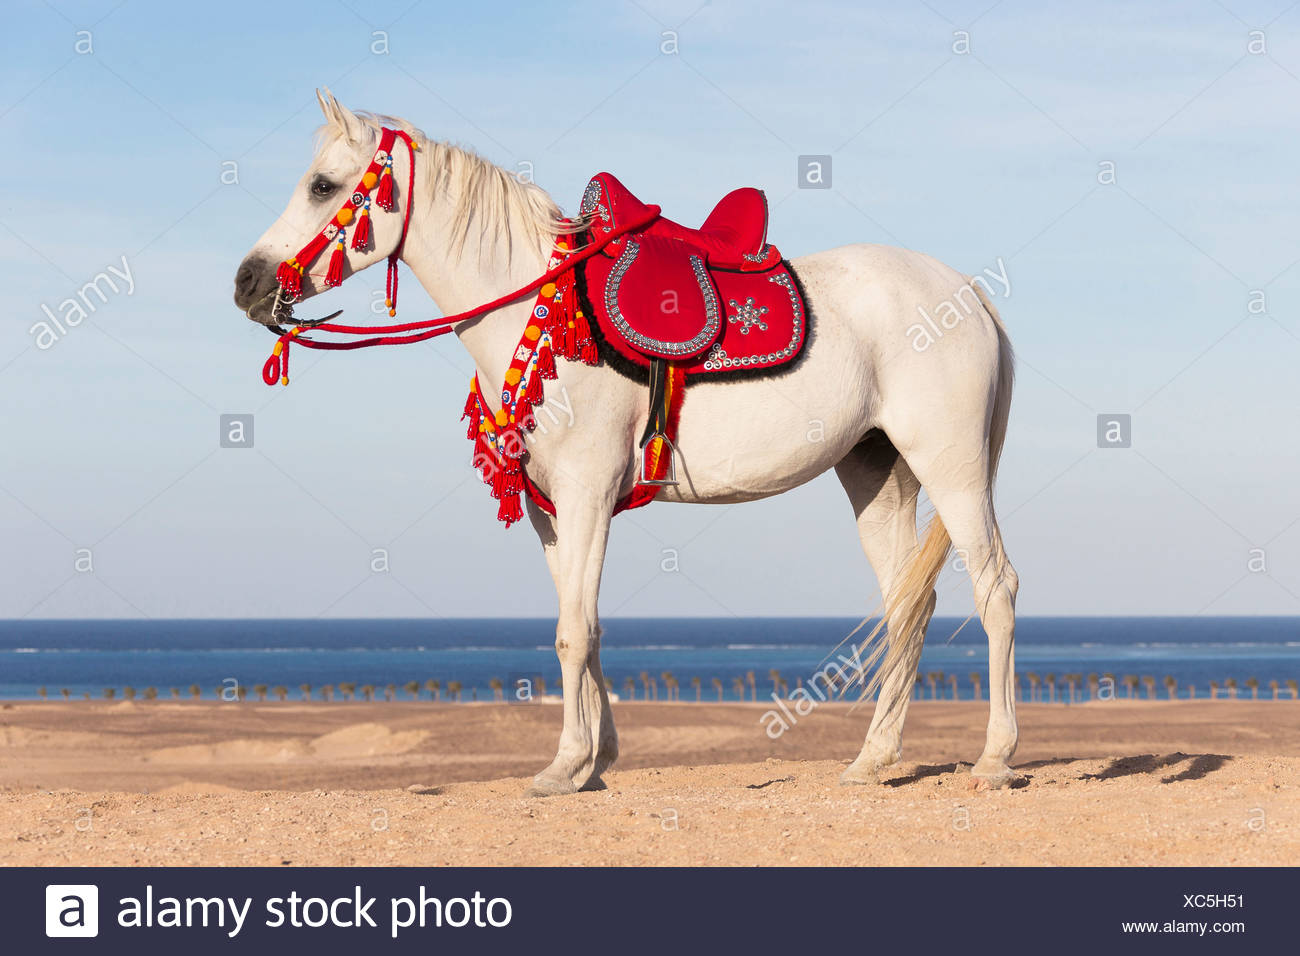 Purebred Arabian Horse Gray Mare With Traditional Saddle And Tack Standing On A Beach Stock Photo Alamy